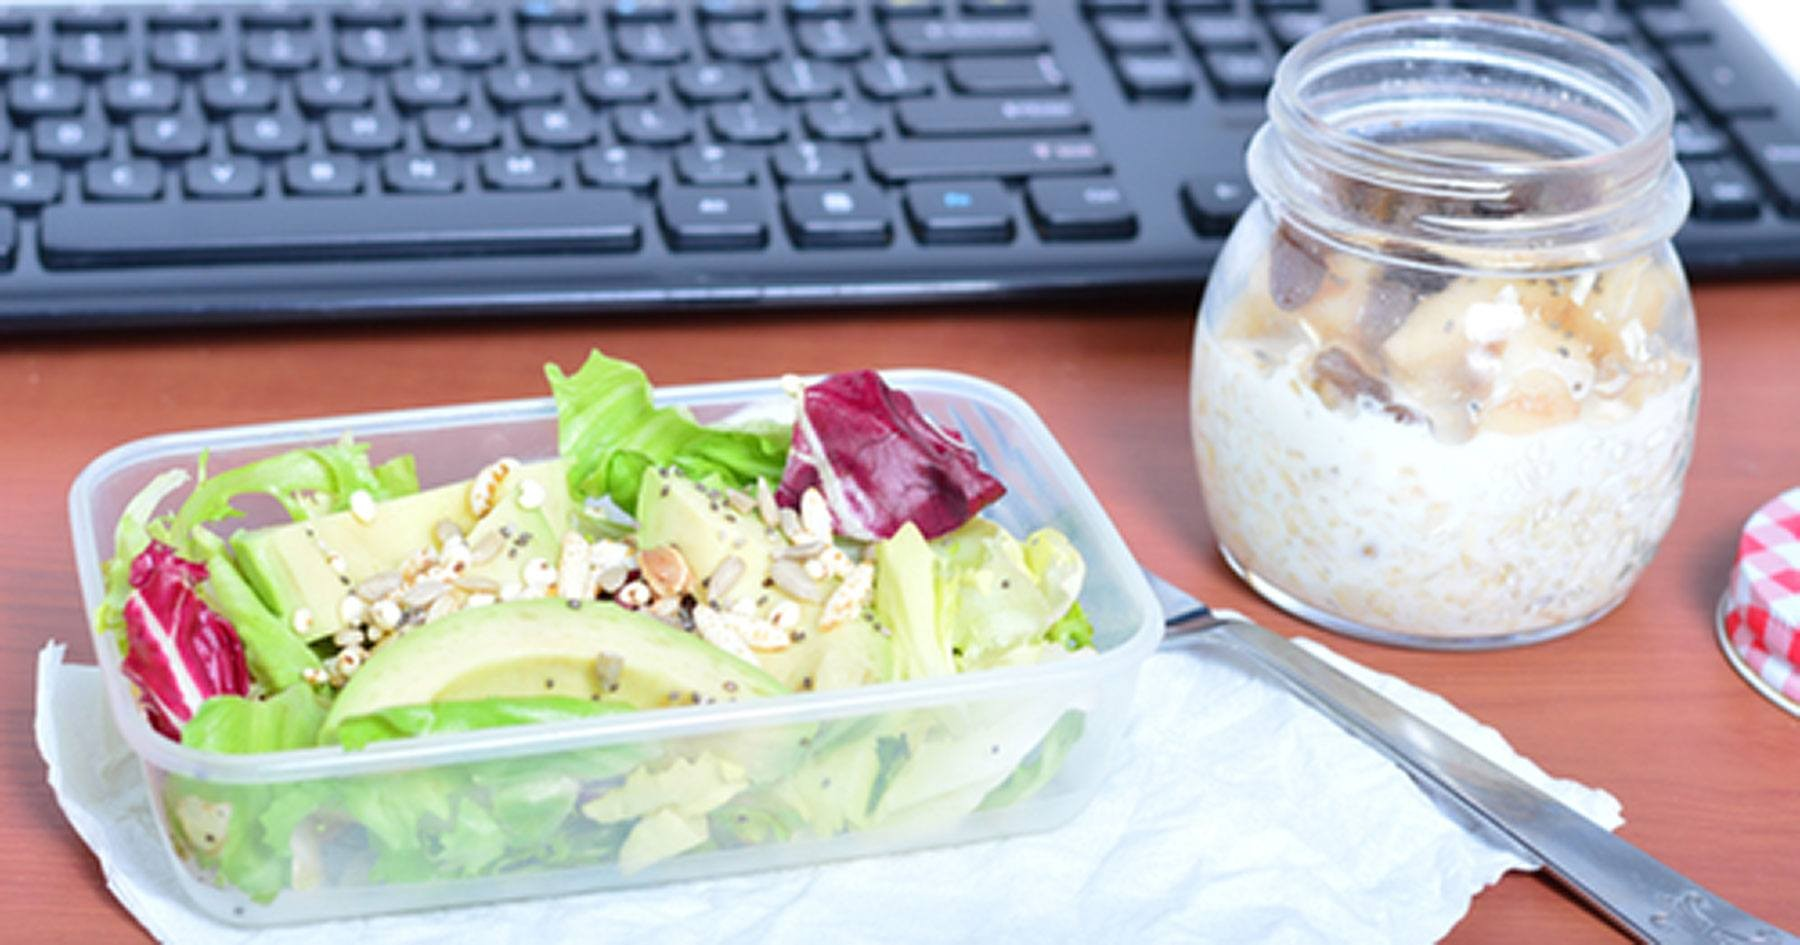 eat-healthy-while-working